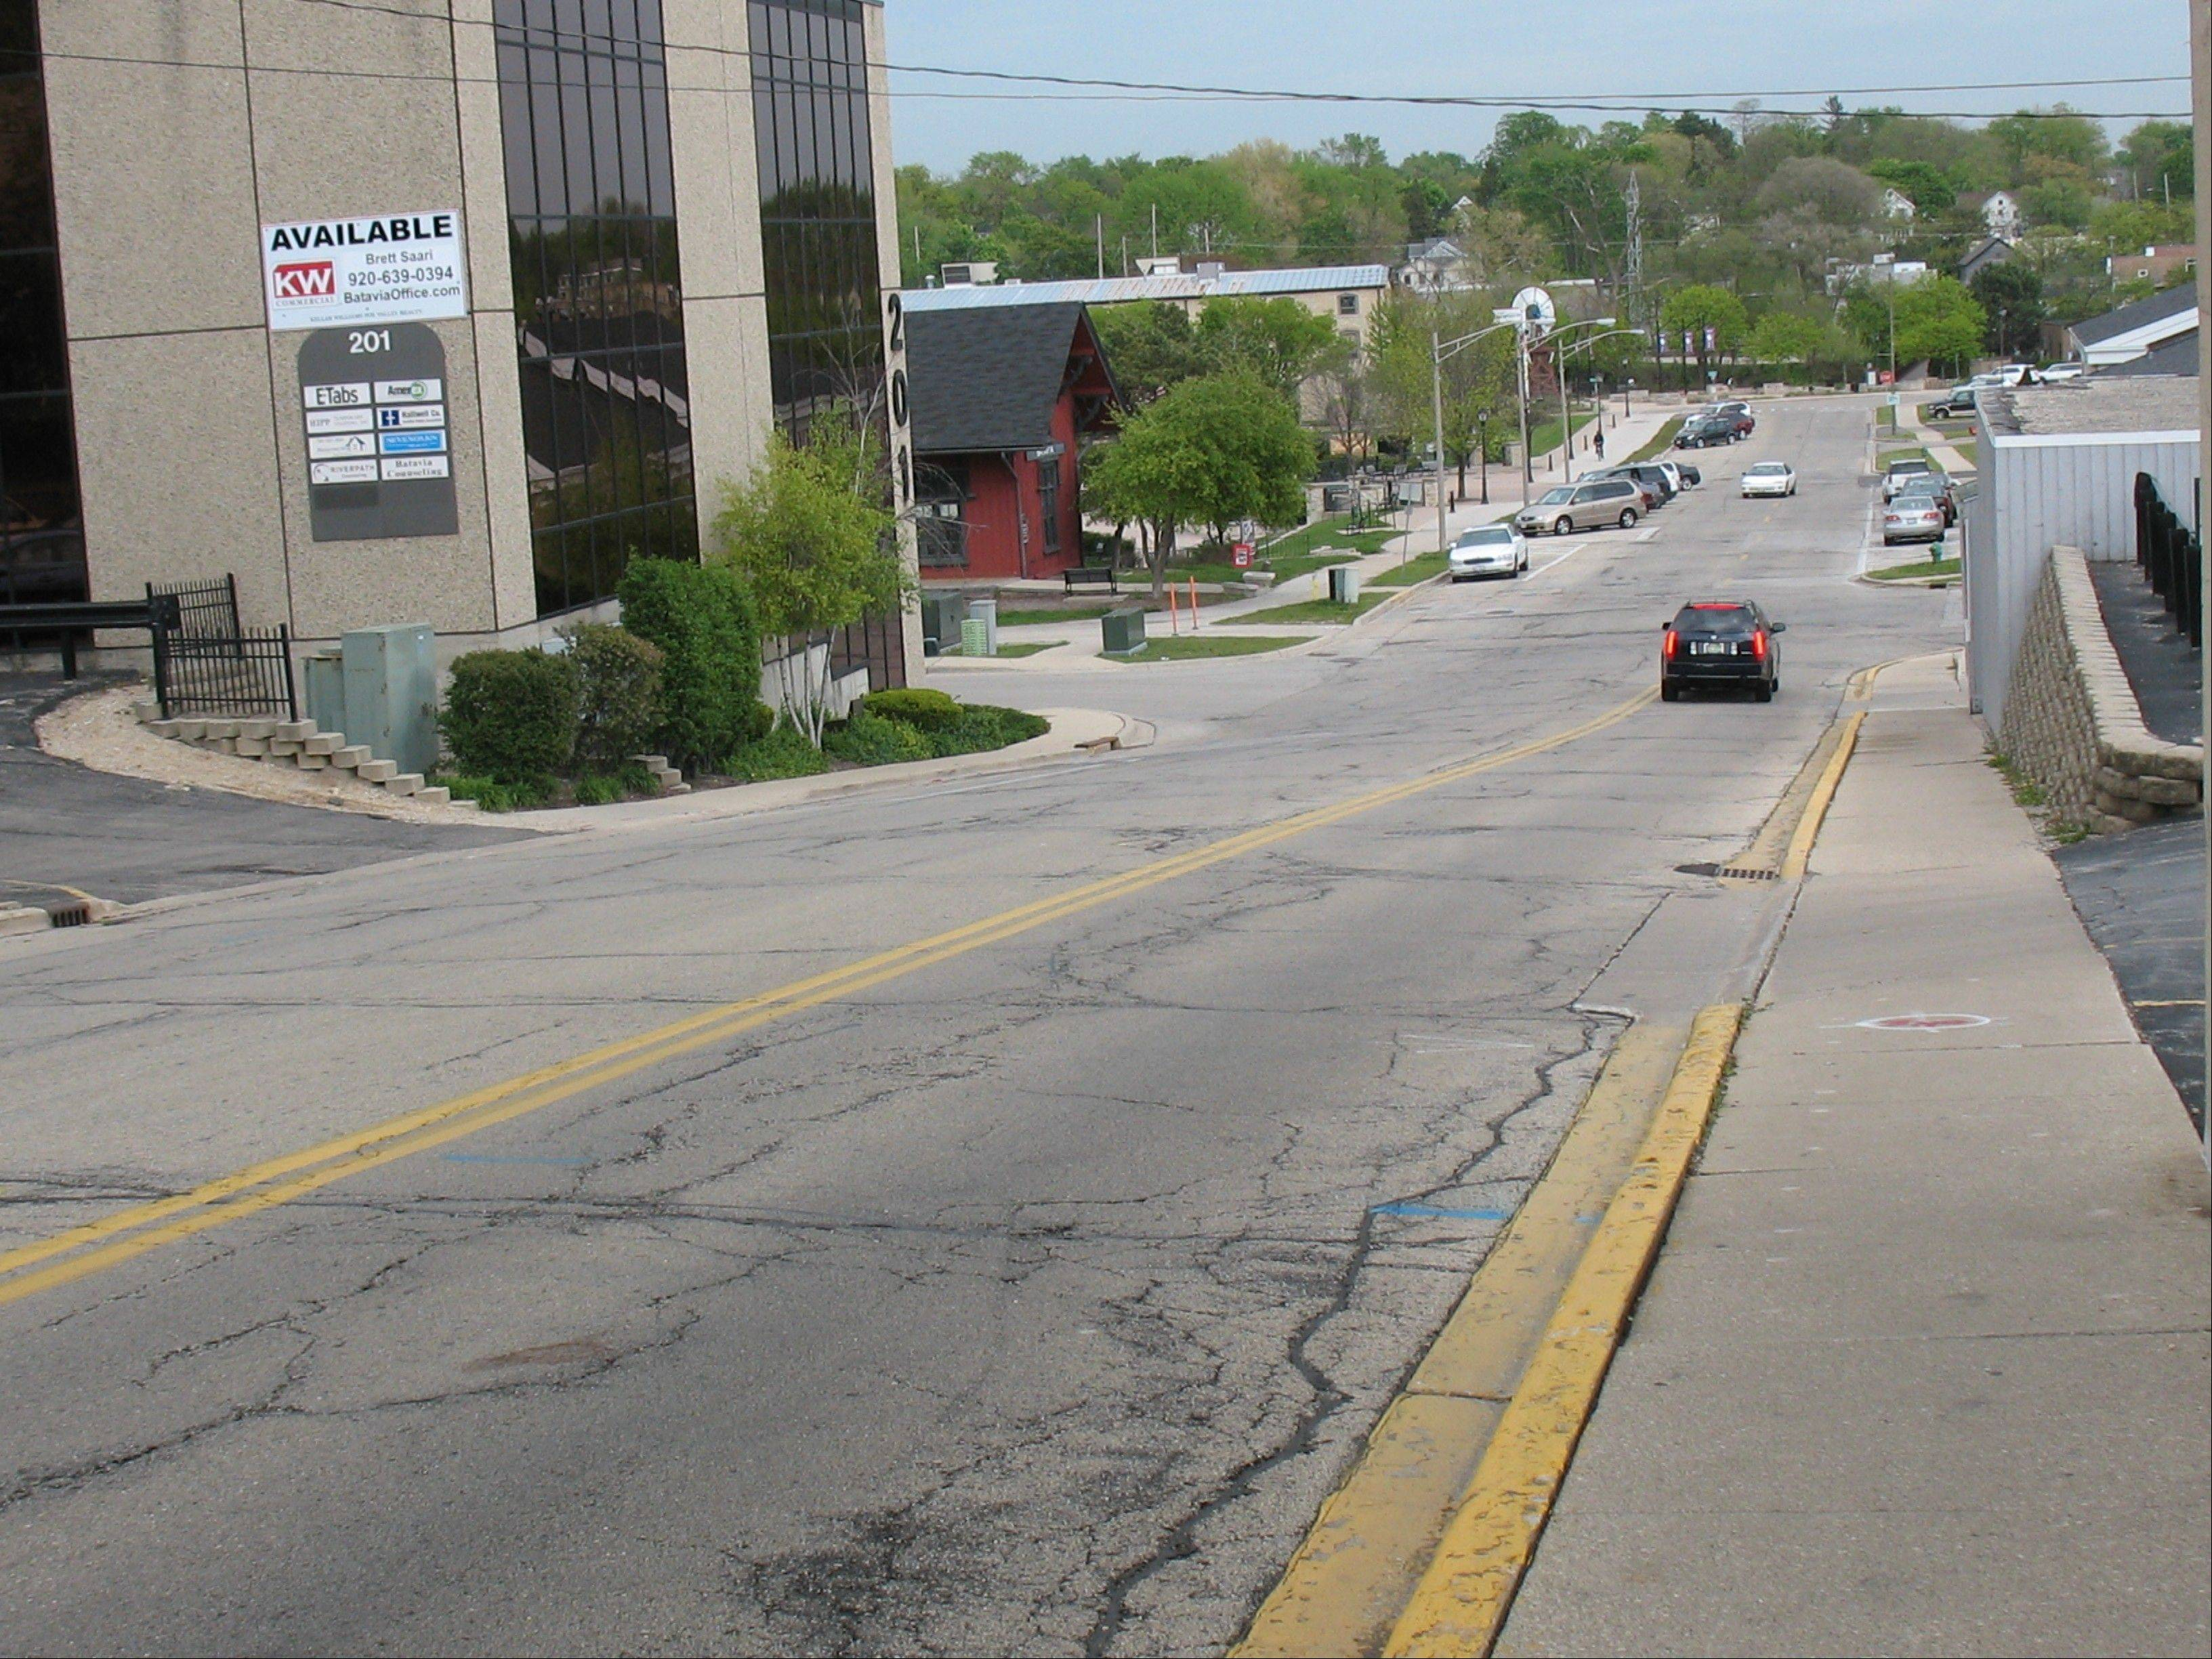 Batavia is considering postponing improving the street, sidewalks and other features of Houston Street another year.